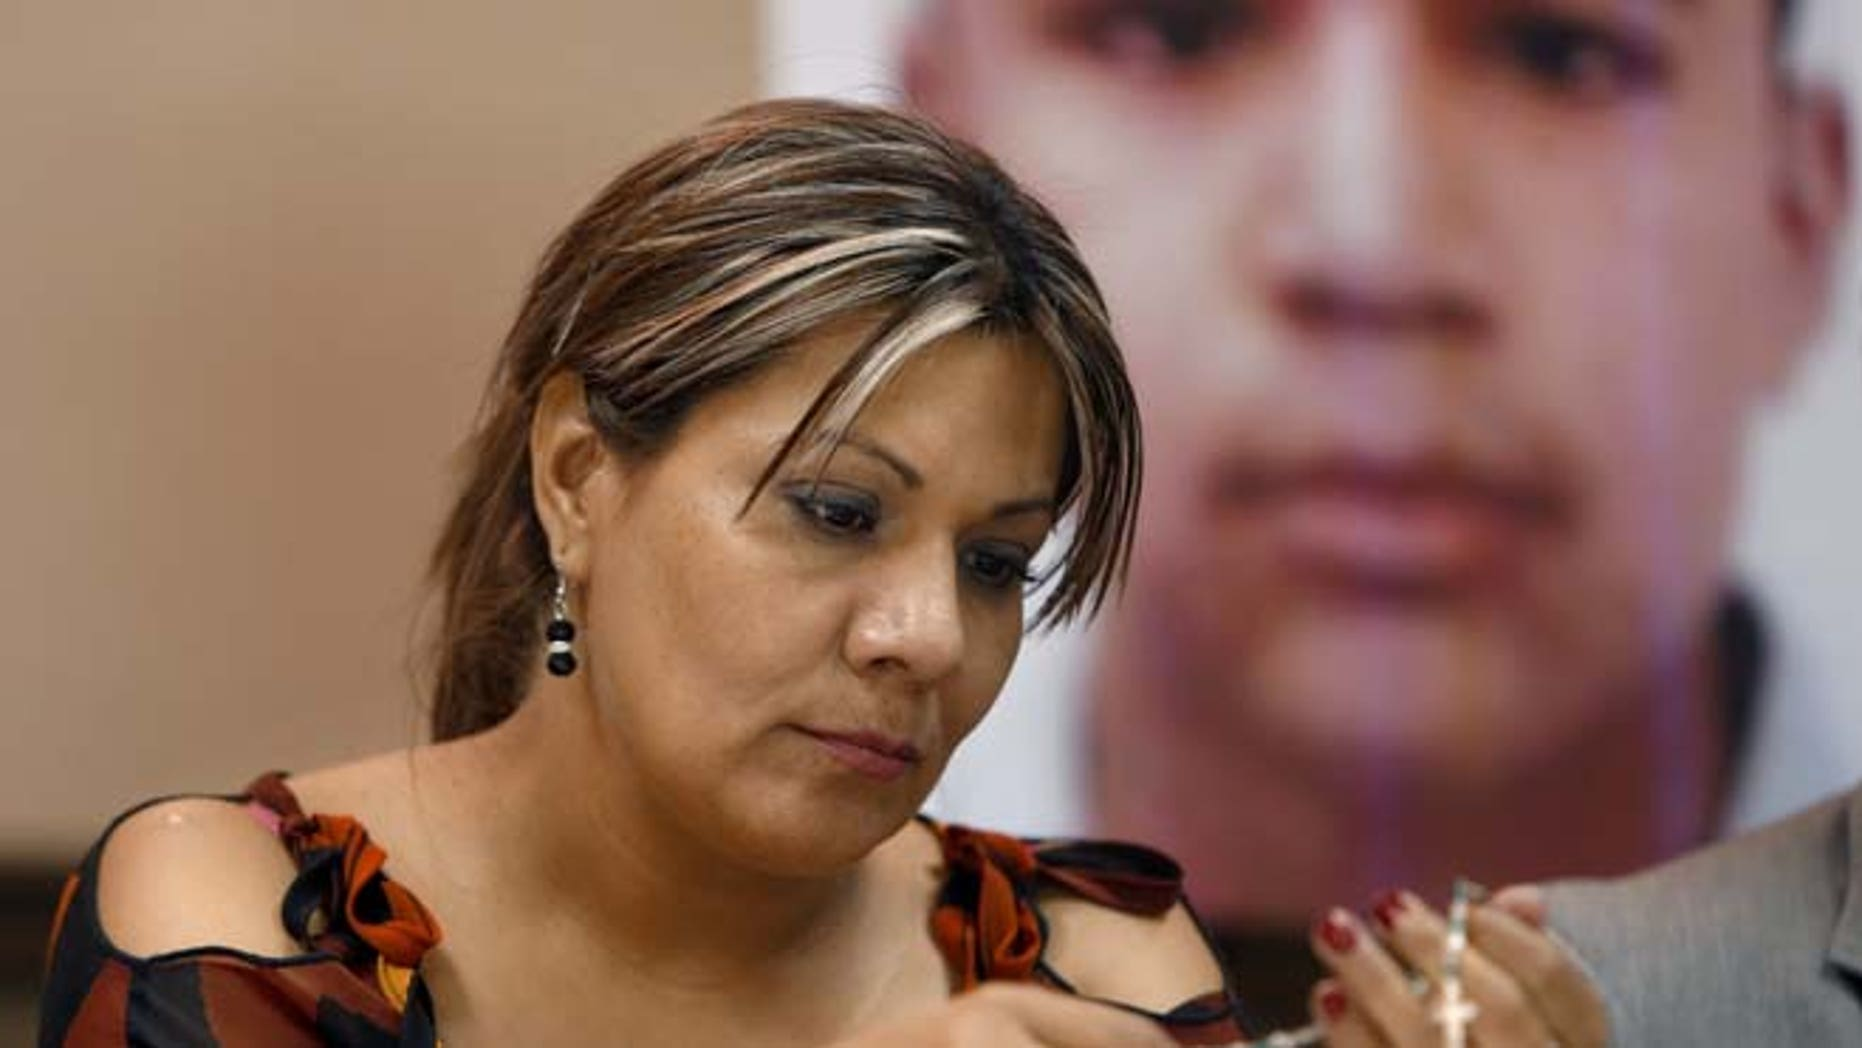 FILE - In this July 29, 2014, file photo, Araceli Rodriguez handles a rosary that belonged to her son Jose Antonio Elena Rodriguez, pictured behind her, who was shot and killed by U.S. Border Patrol agent in October 2012, during a news conference in Nogales, Mexico. The civil rights case against Agent Lonnie Swartz over the death of 16-year-old Jose Antonio Elena Rodriguez will go forward after U.S. District Court Judge Raner C. Collins denied a part of his motion to dismiss the case. (Kelly Presnell/Arizona Daily Star via AP)  ALL LOCAL TELEVISION OUT; PAC-12 OUT; MANDATORY CREDIT; GREEN VALLEY NEWS OUT; MANDATORY CREDIT